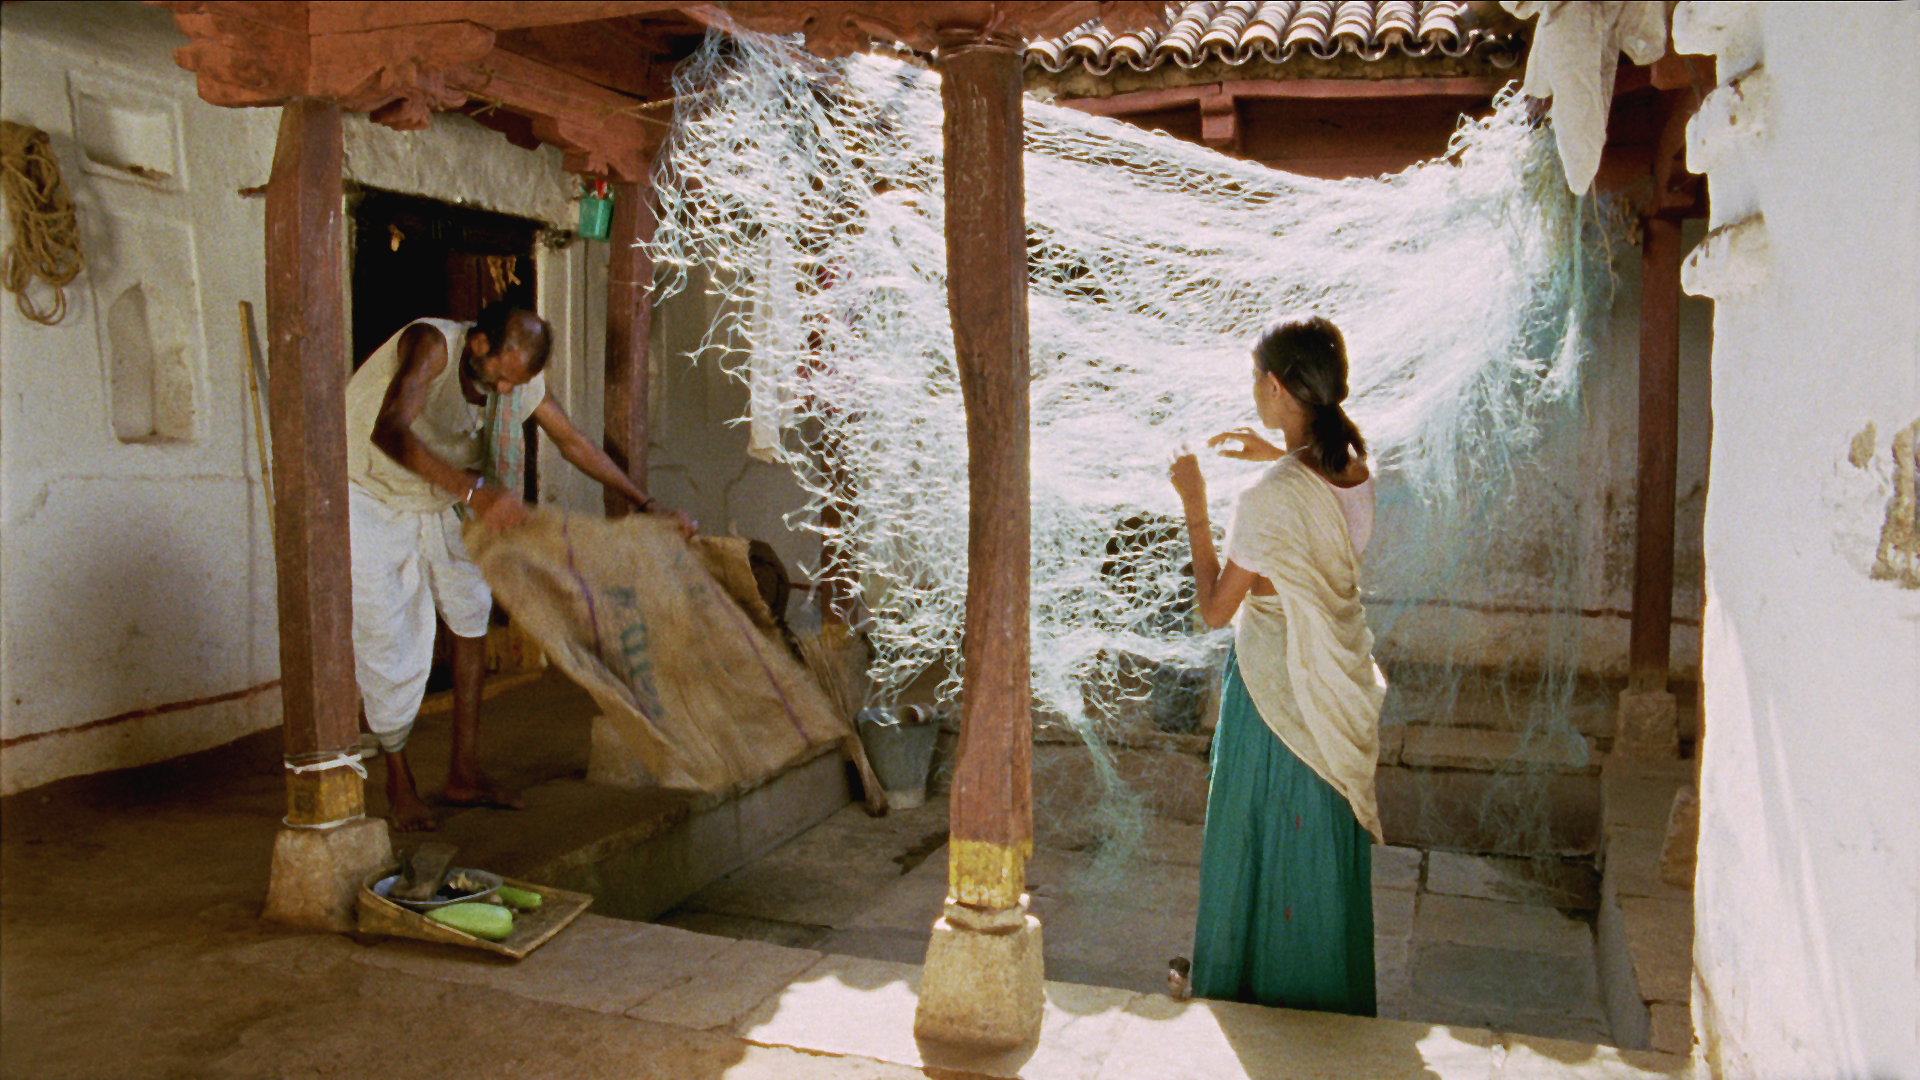 Vanaja and Somayya mending Net.jpg